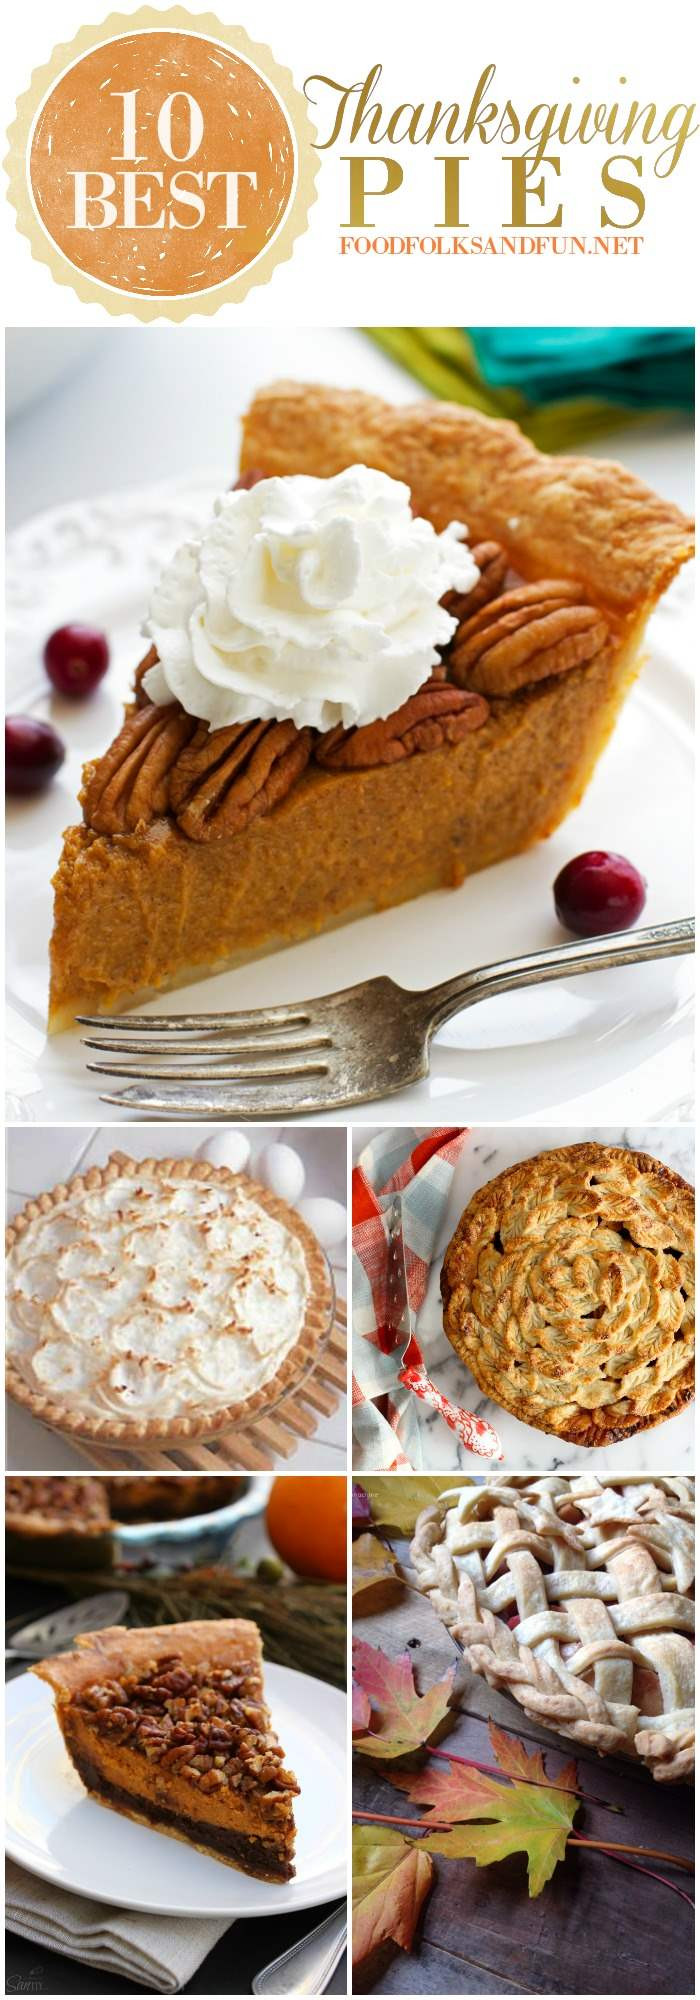 Best Thanksgiving Pies Recipes  10 Best Thanksgiving Pie Recipes • Food Folks and Fun